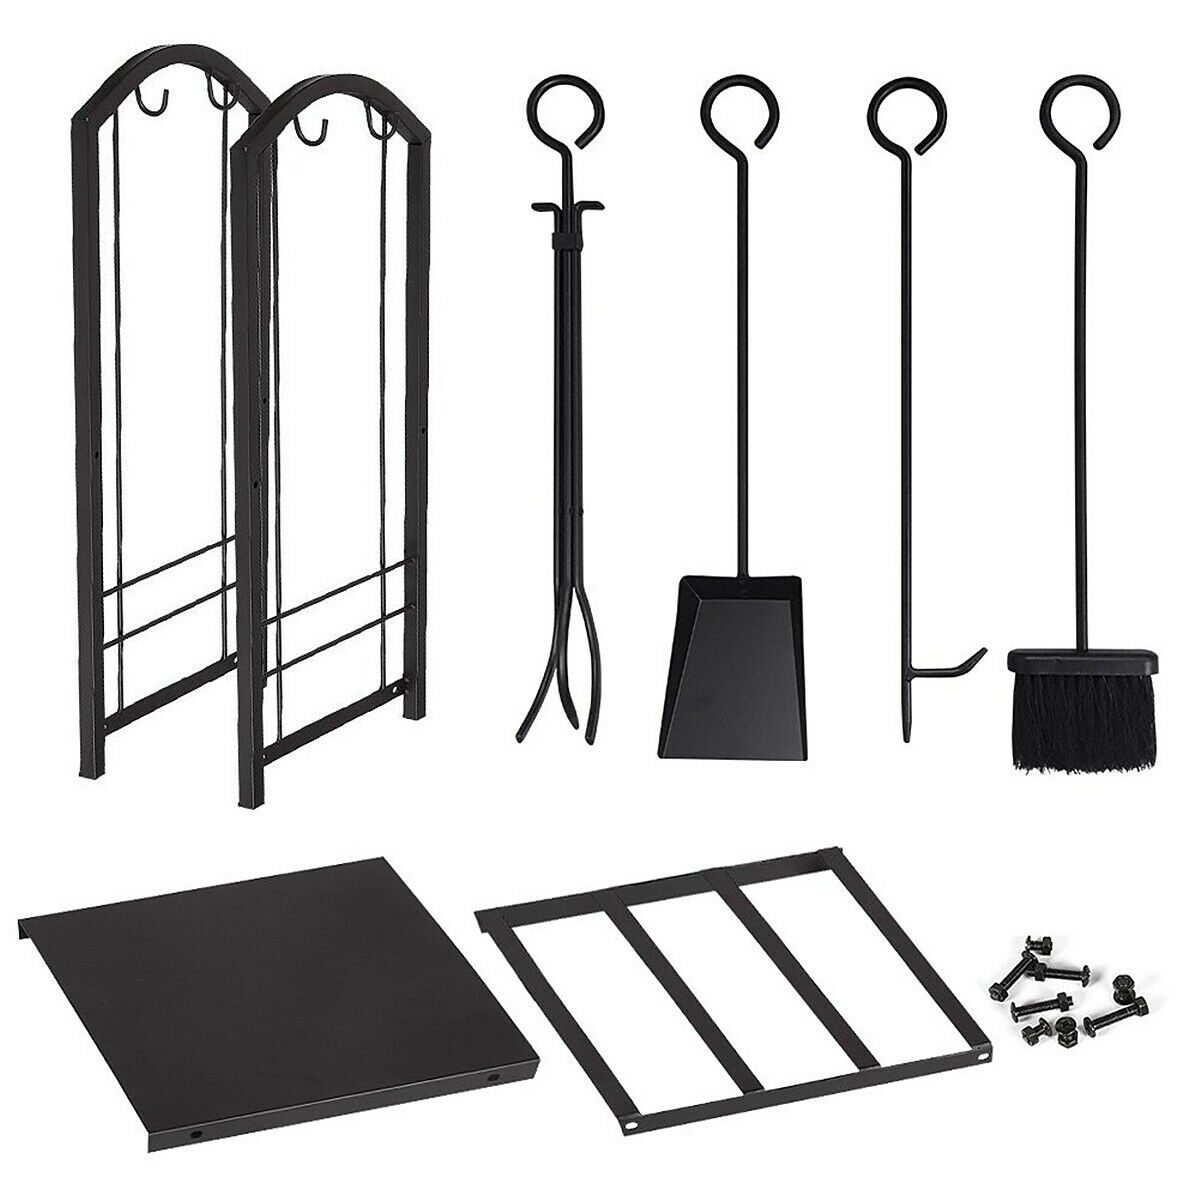 Fireplace Log Holder Foldable Black Storage Carrier of Wood Fire Pit Stove Decorative Holders Accessories IBS Outdoor Indoor Firewood Racks